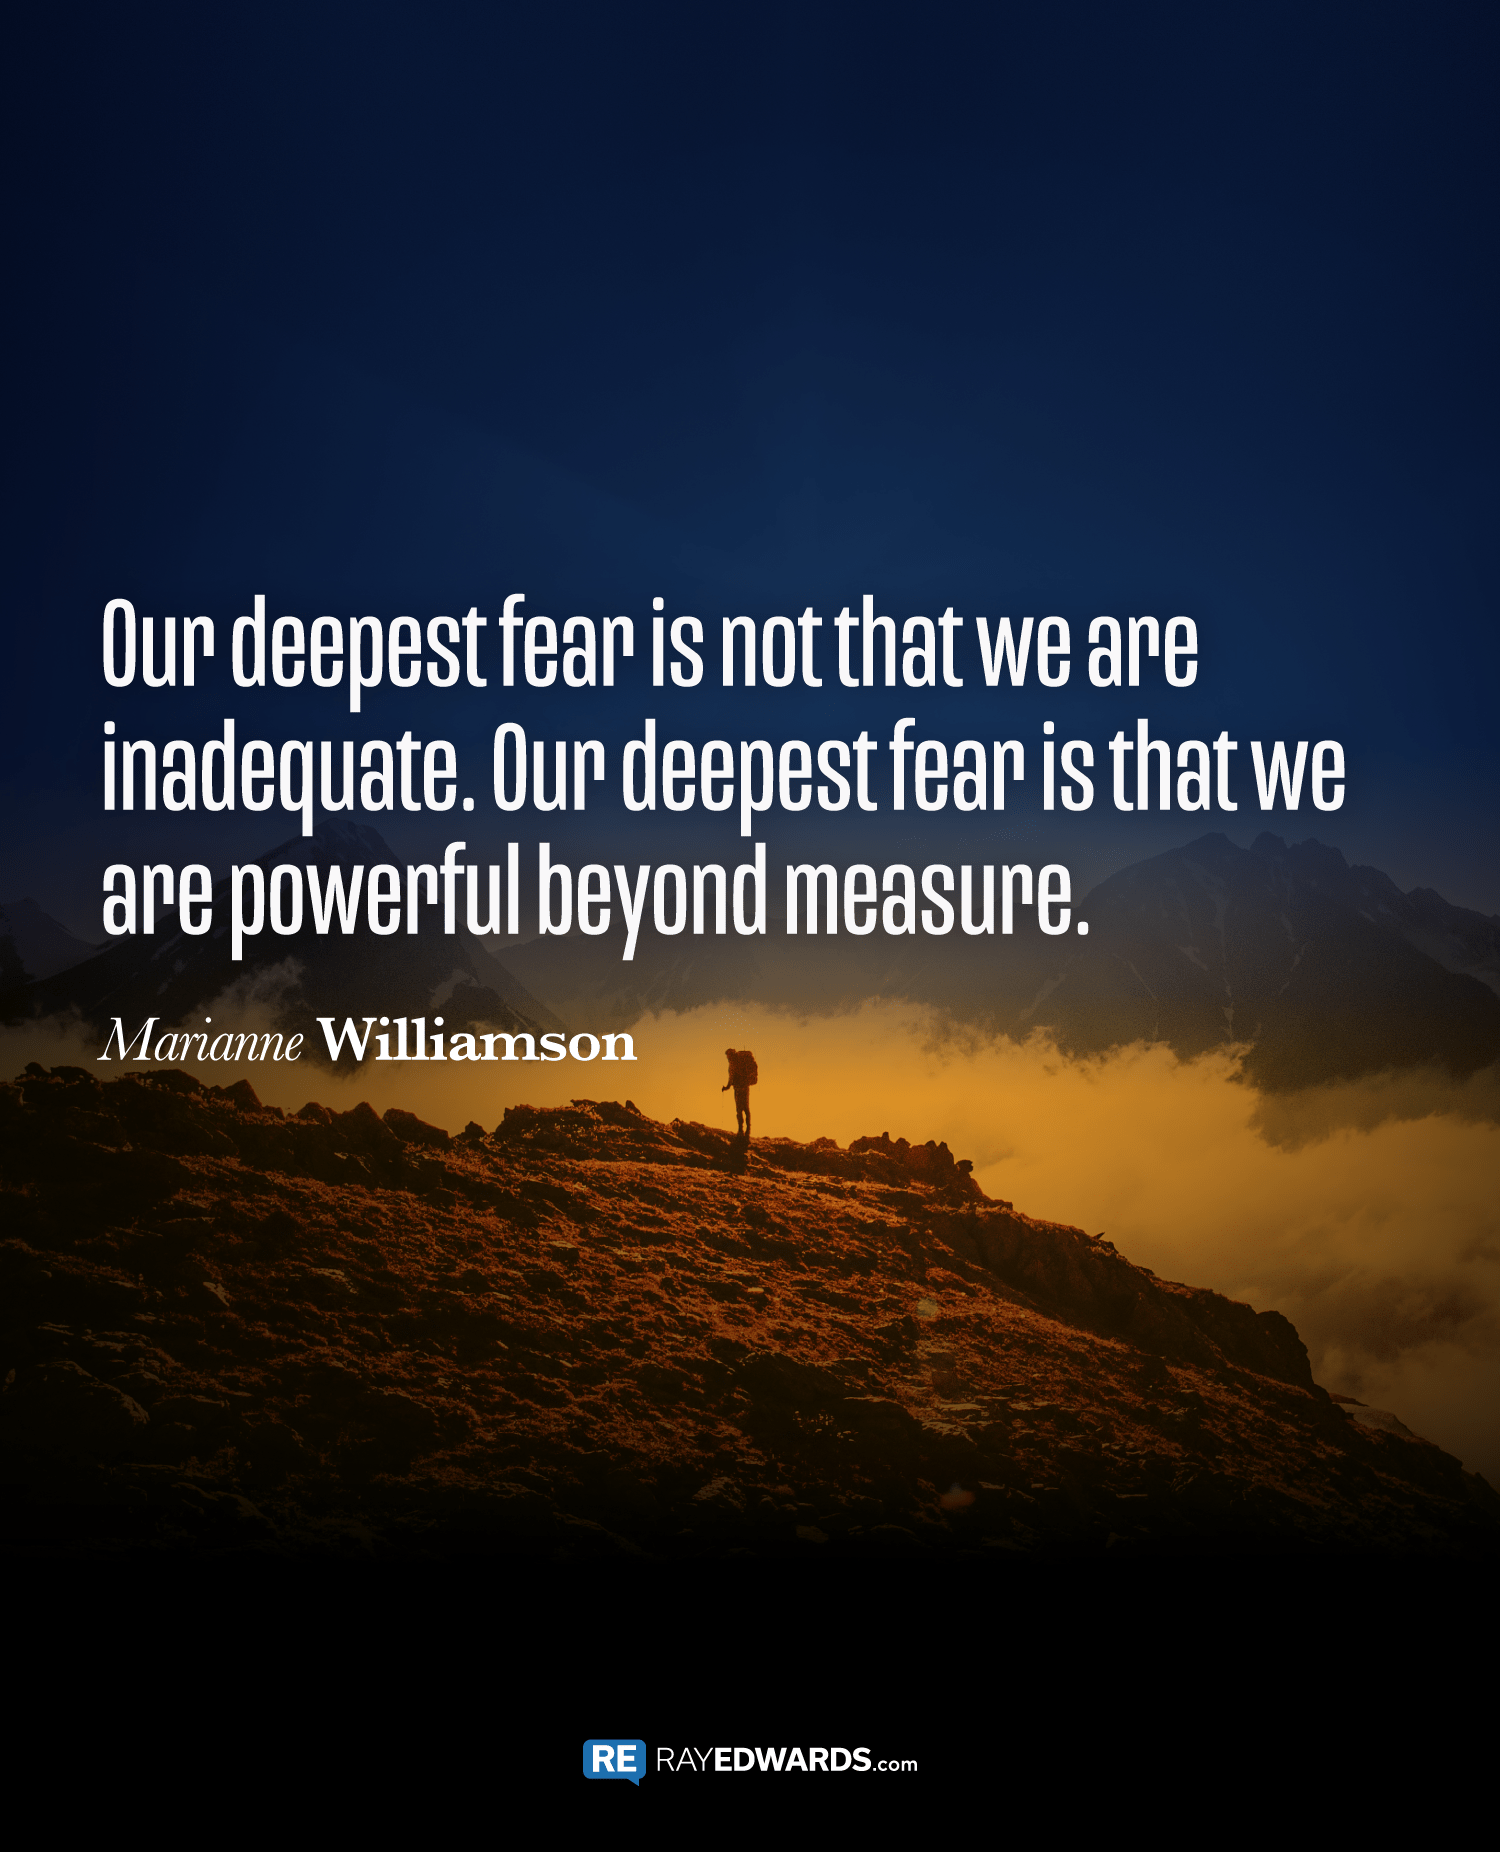 Our Deepest Fear Is Not That We Are Inadequate Marianne Williamson